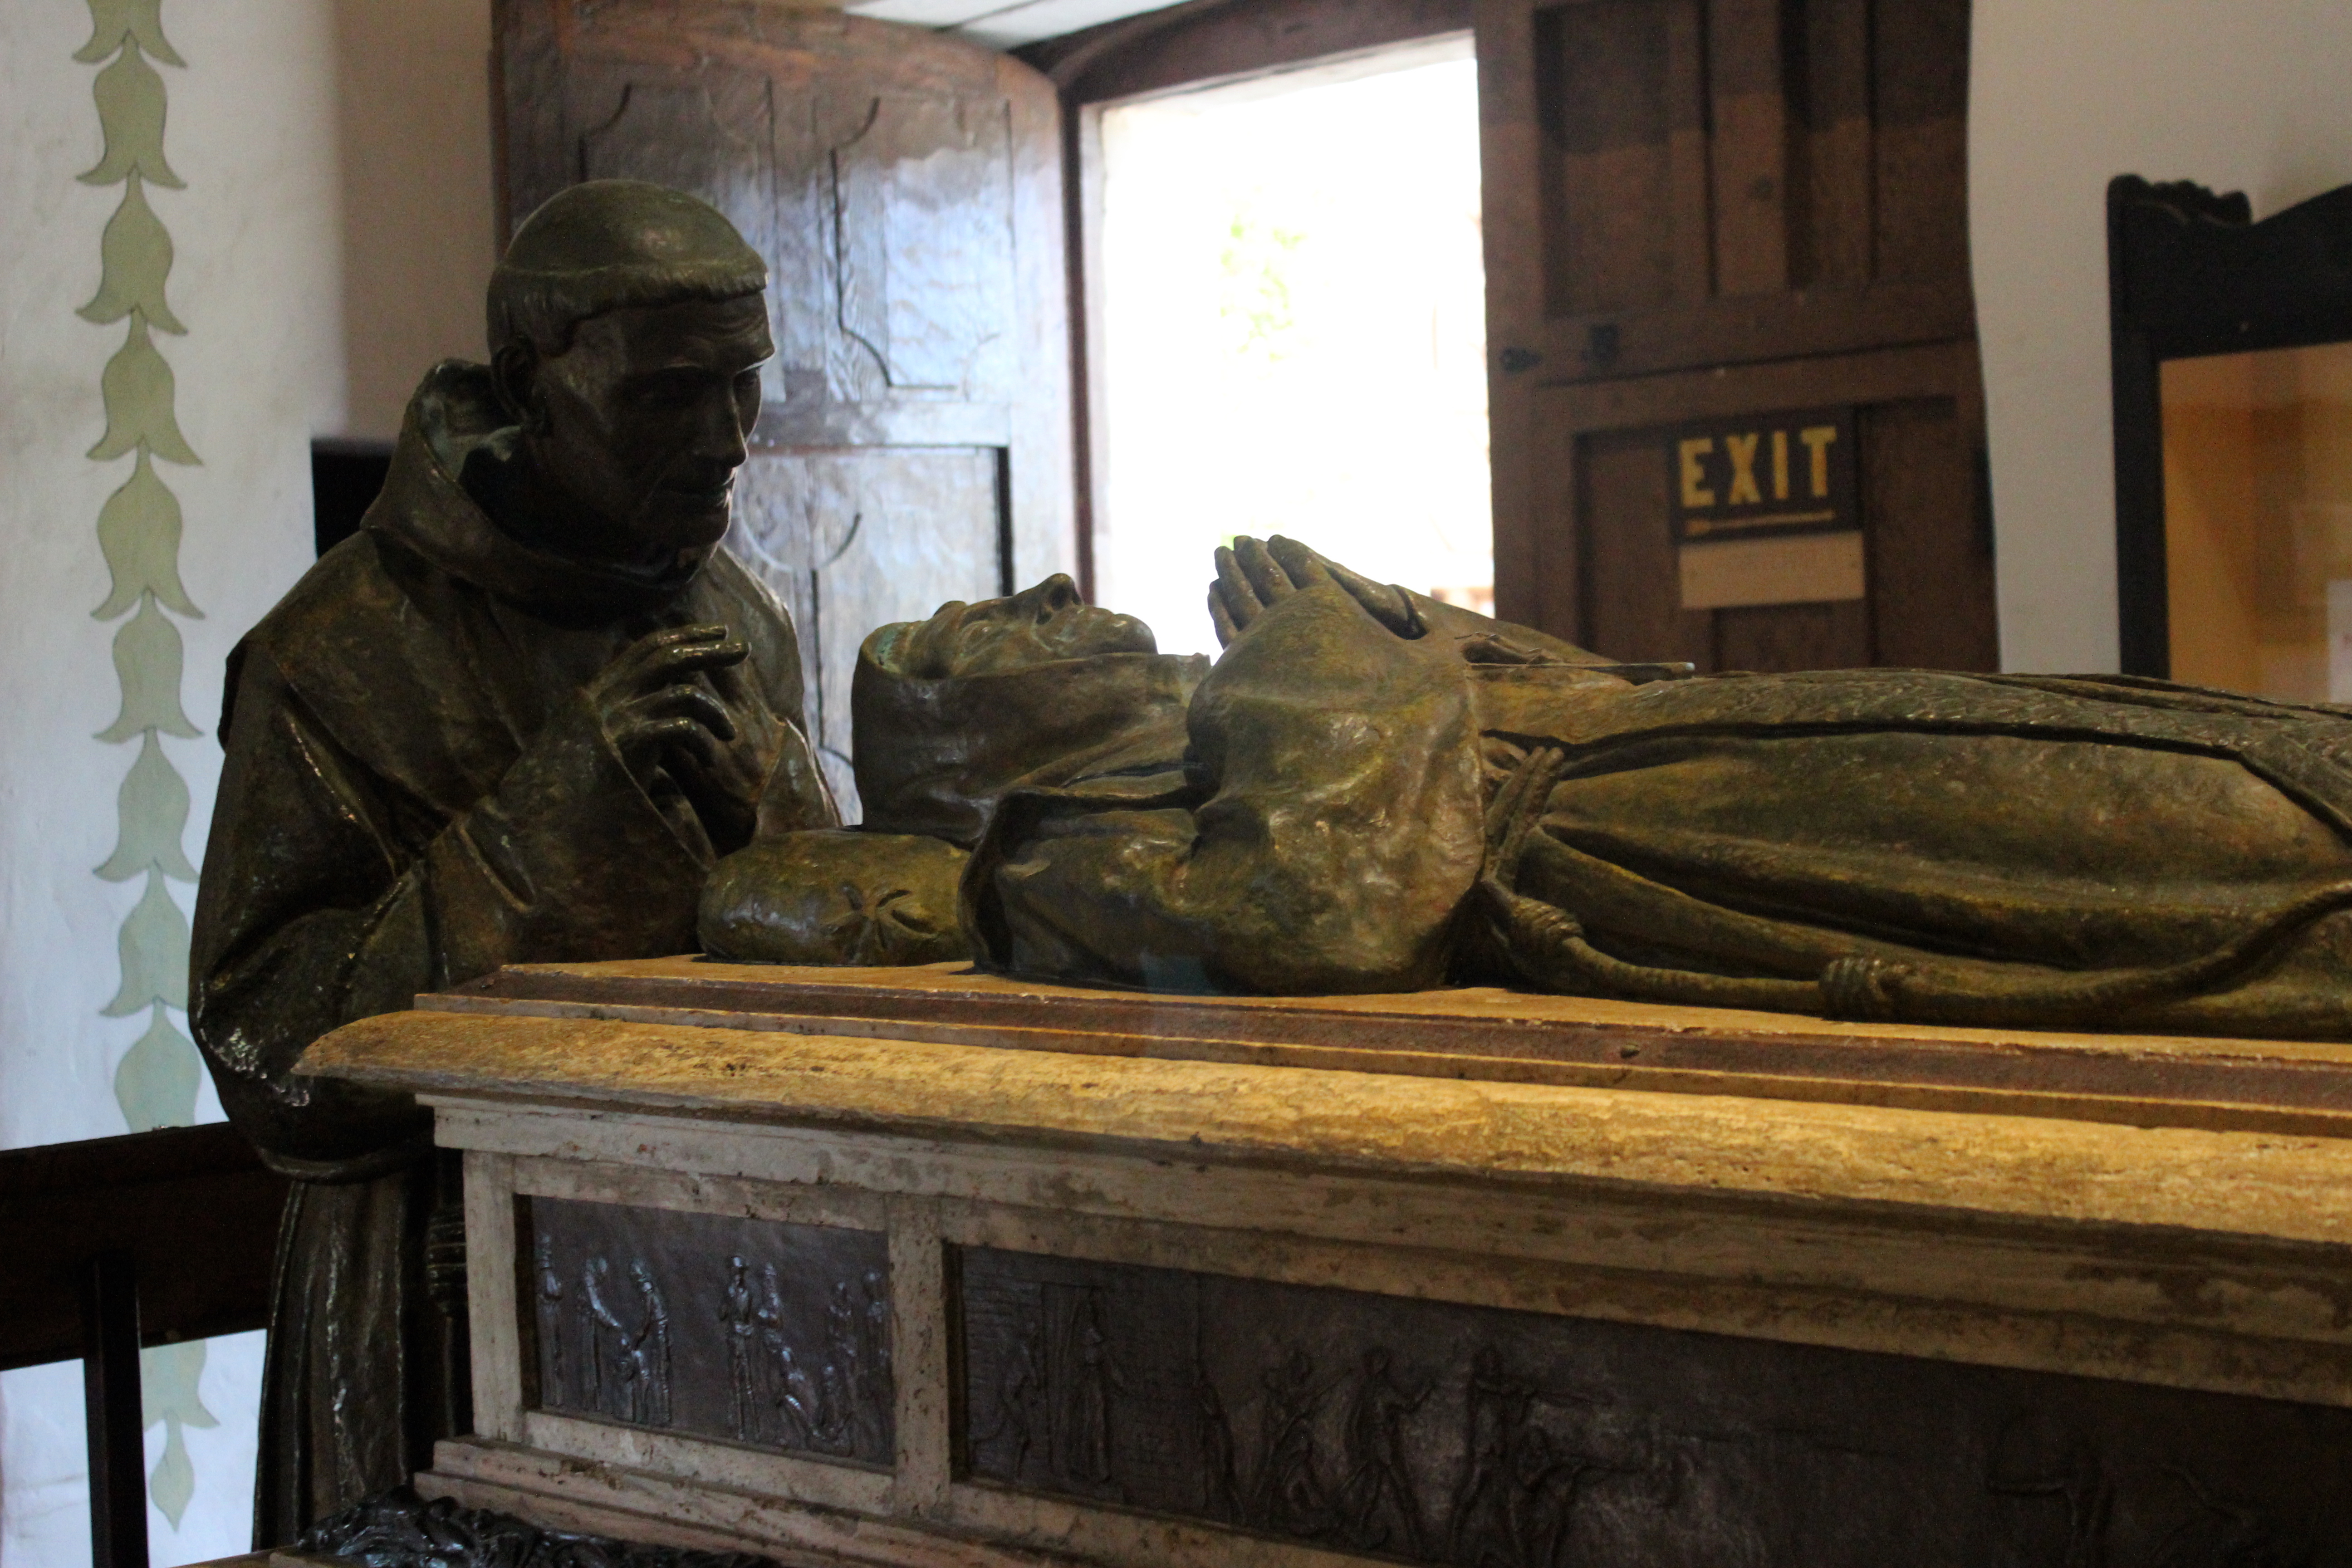 Cenotaph of Saint Junípero Serra in the Mission San Carlos Borromeo, Carmel-by-the-Sea (1924); Fr. Juan Crespí, who predeceased Serra, stands at the head, praying over him.